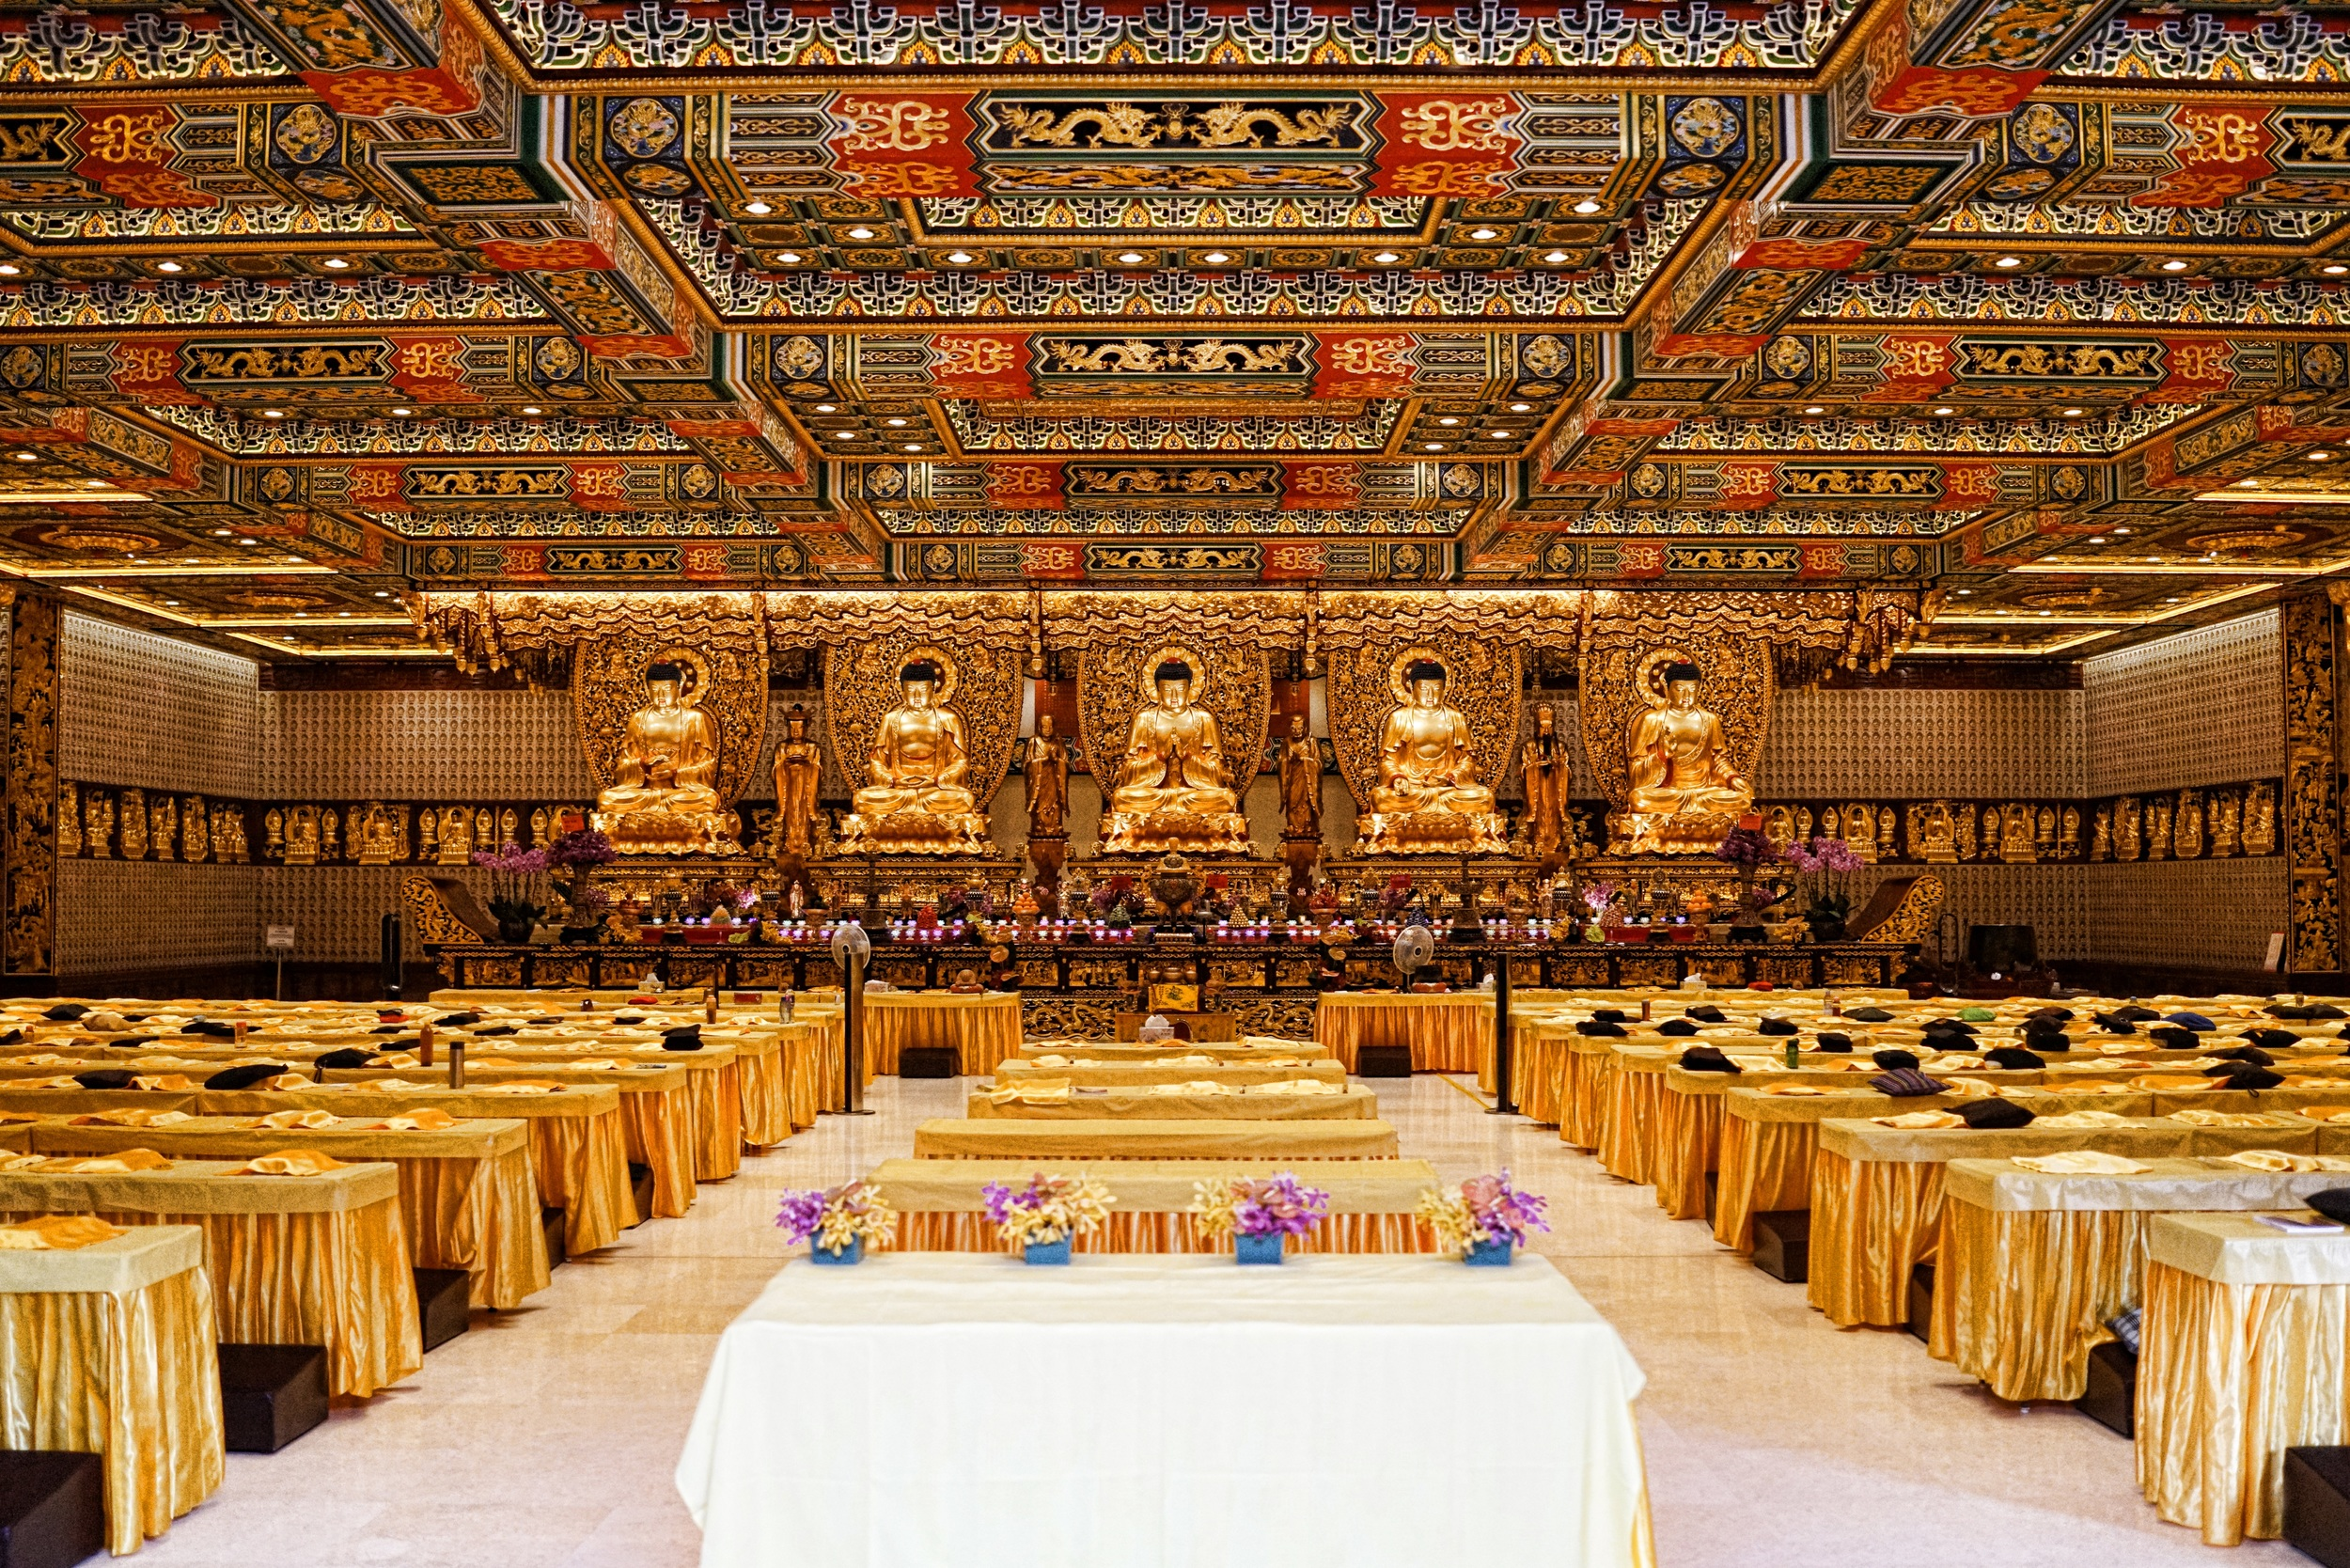 It does not matter how many times I visit the Po Lin Monastery on Lantau Island I am always gobsmacked by the interior, simply amazing..